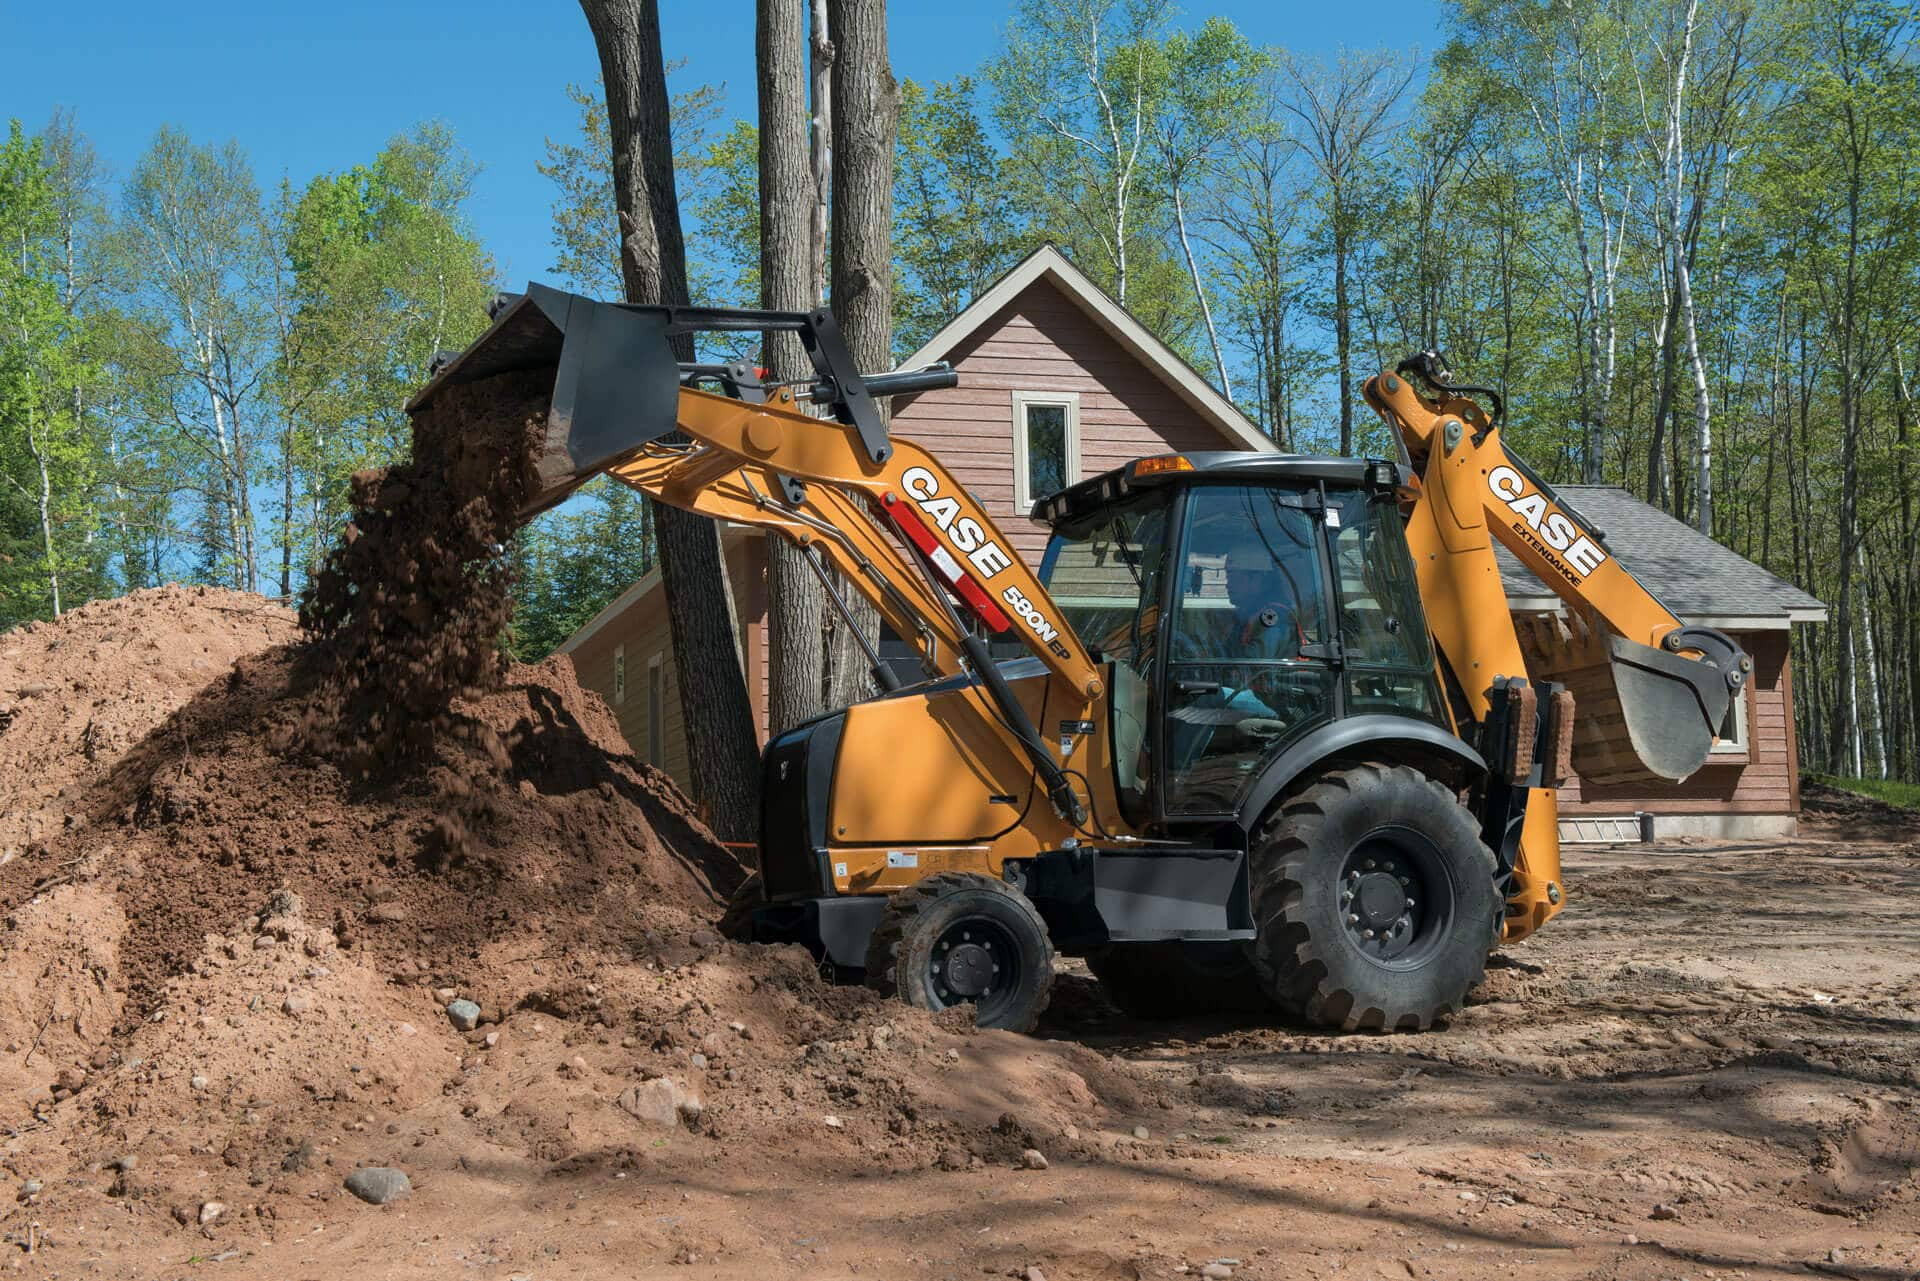 Backhoe Loader Gallery | CASE Construction Equipment